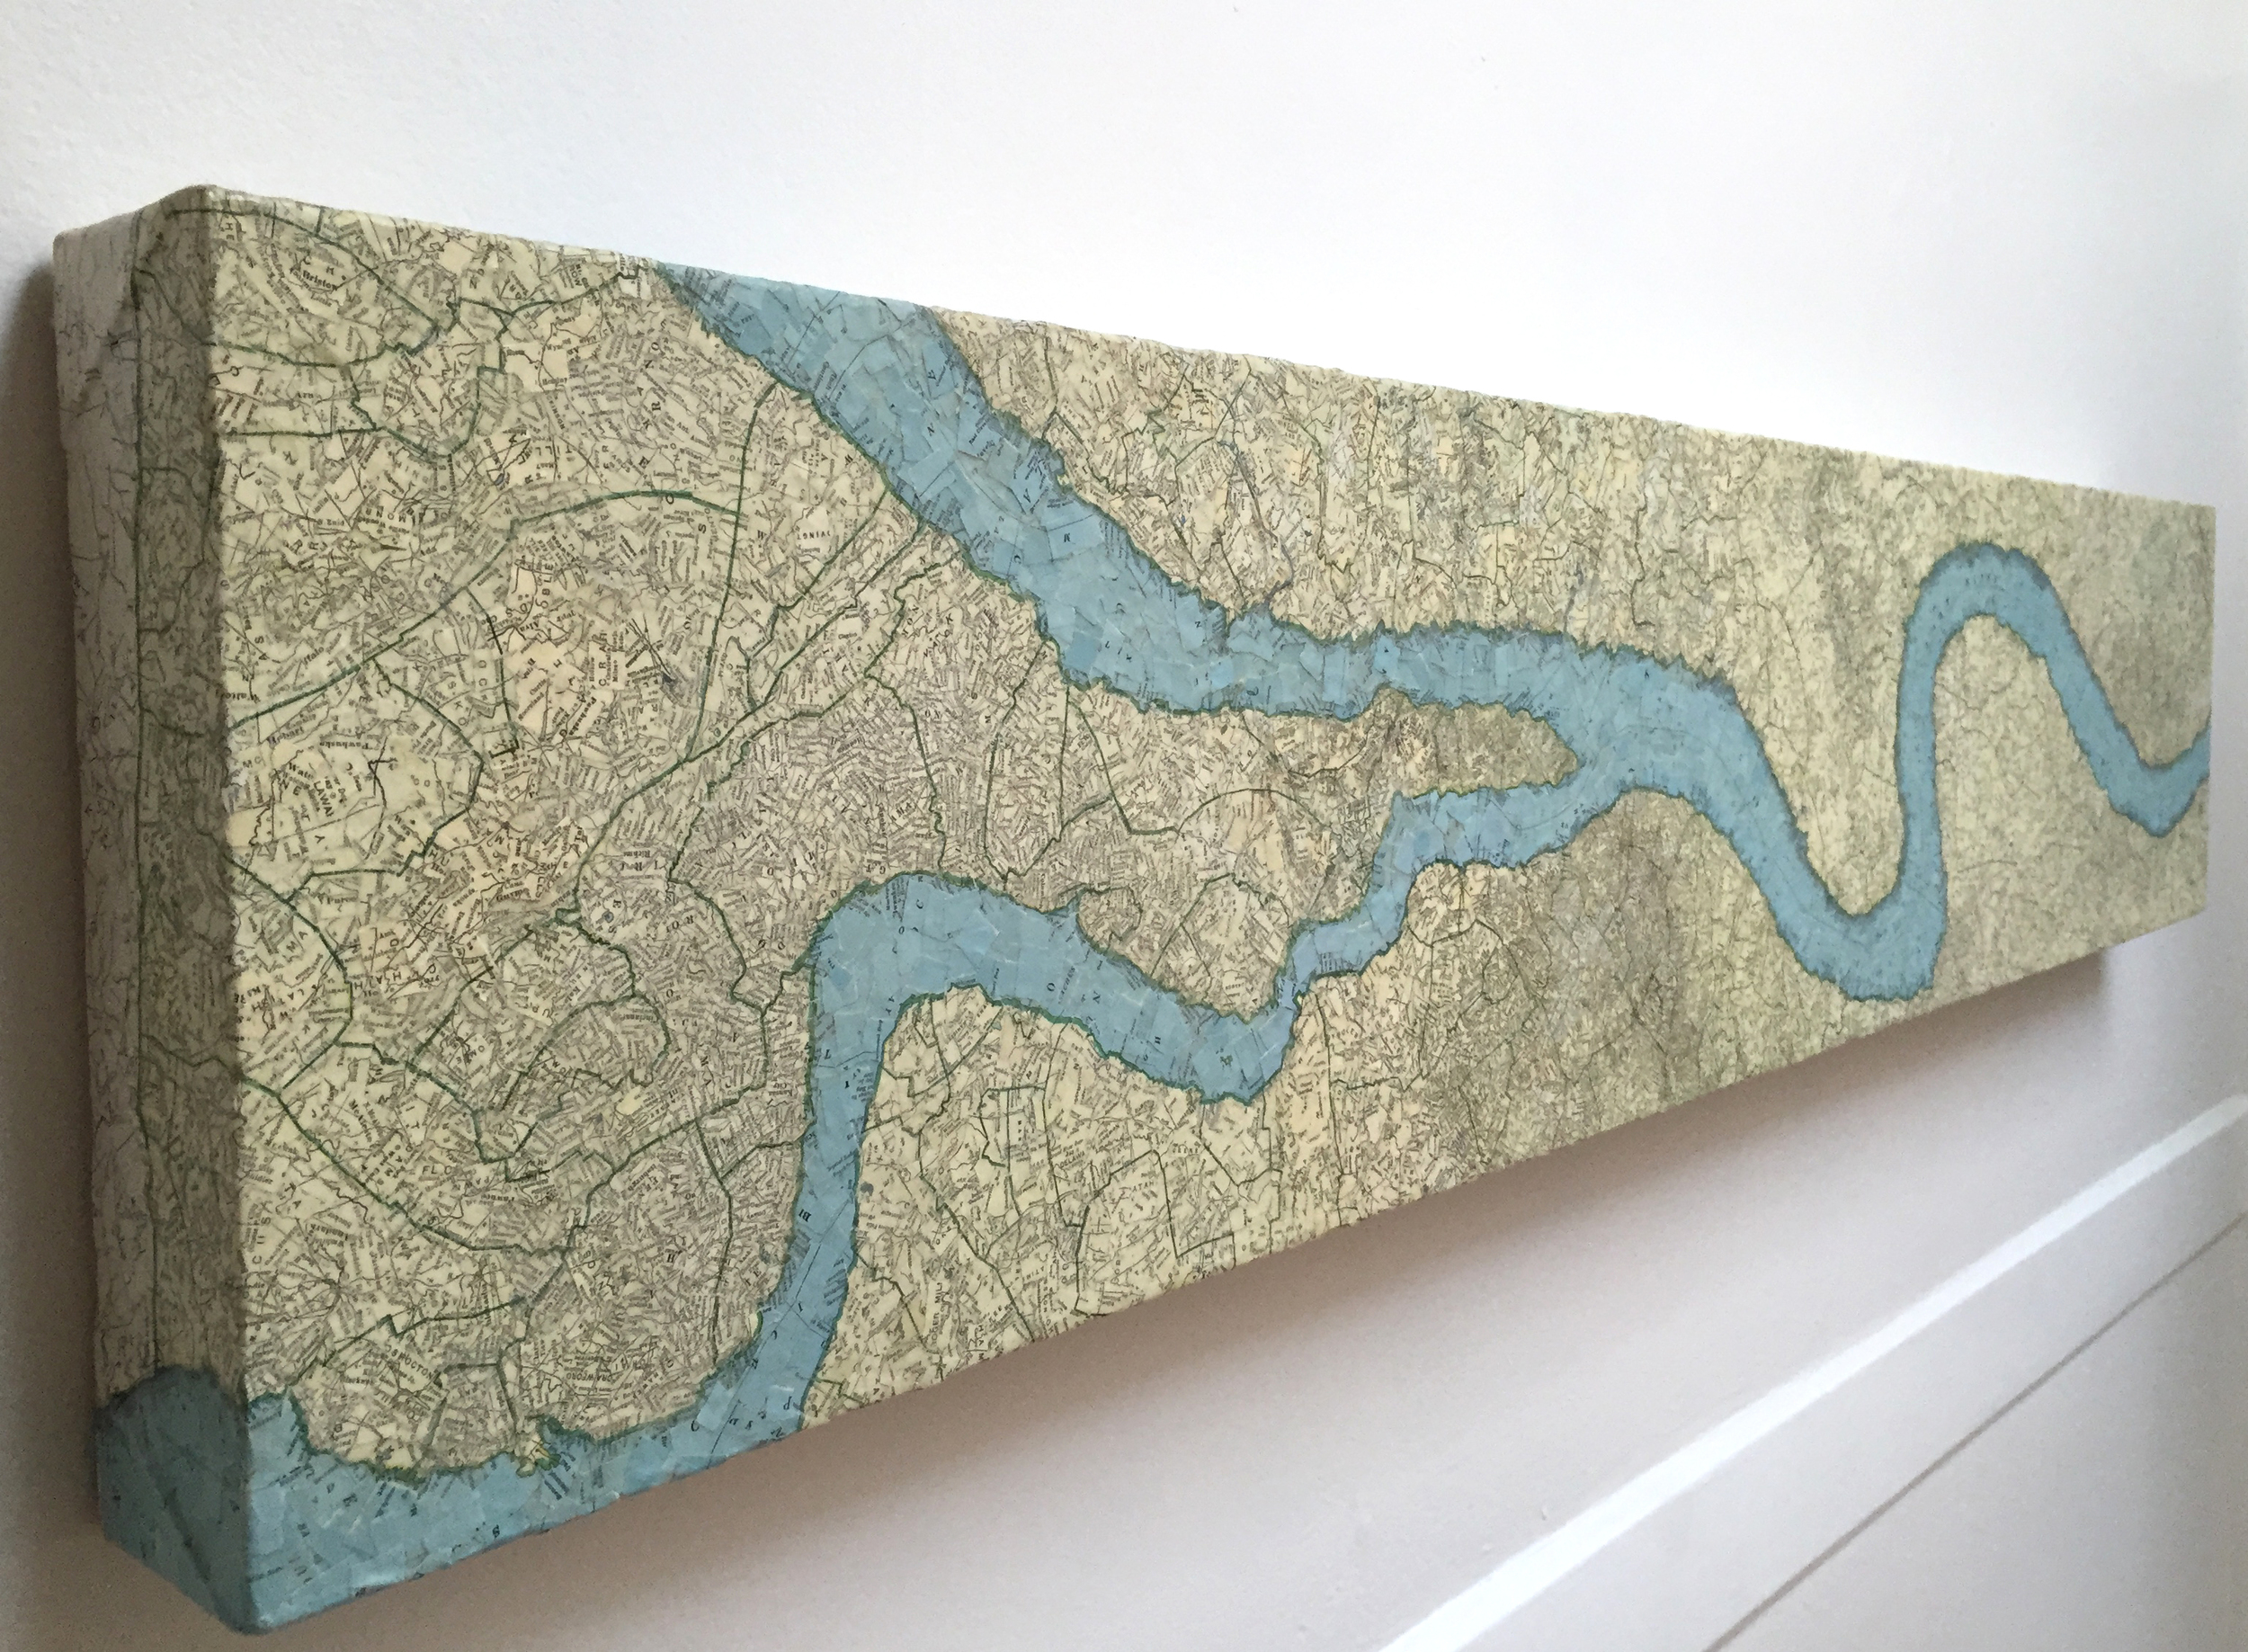 """Lazy River"" (2009)<br>Torn map collage on canvas, 12 x 48 x 3 in."